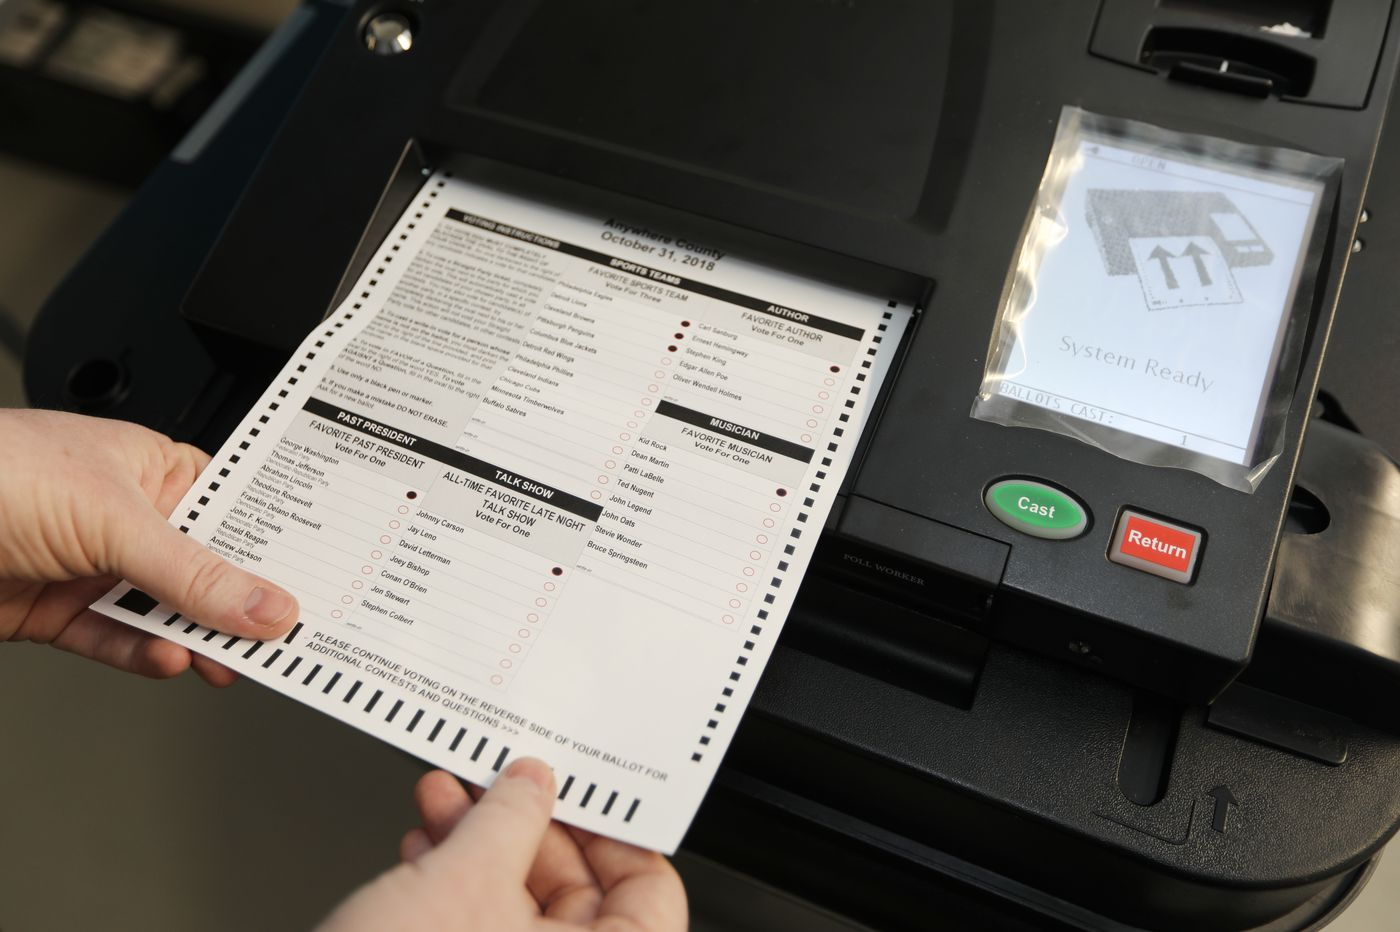 New voting security measures could disenfranchise voters with disabilities | Opinion